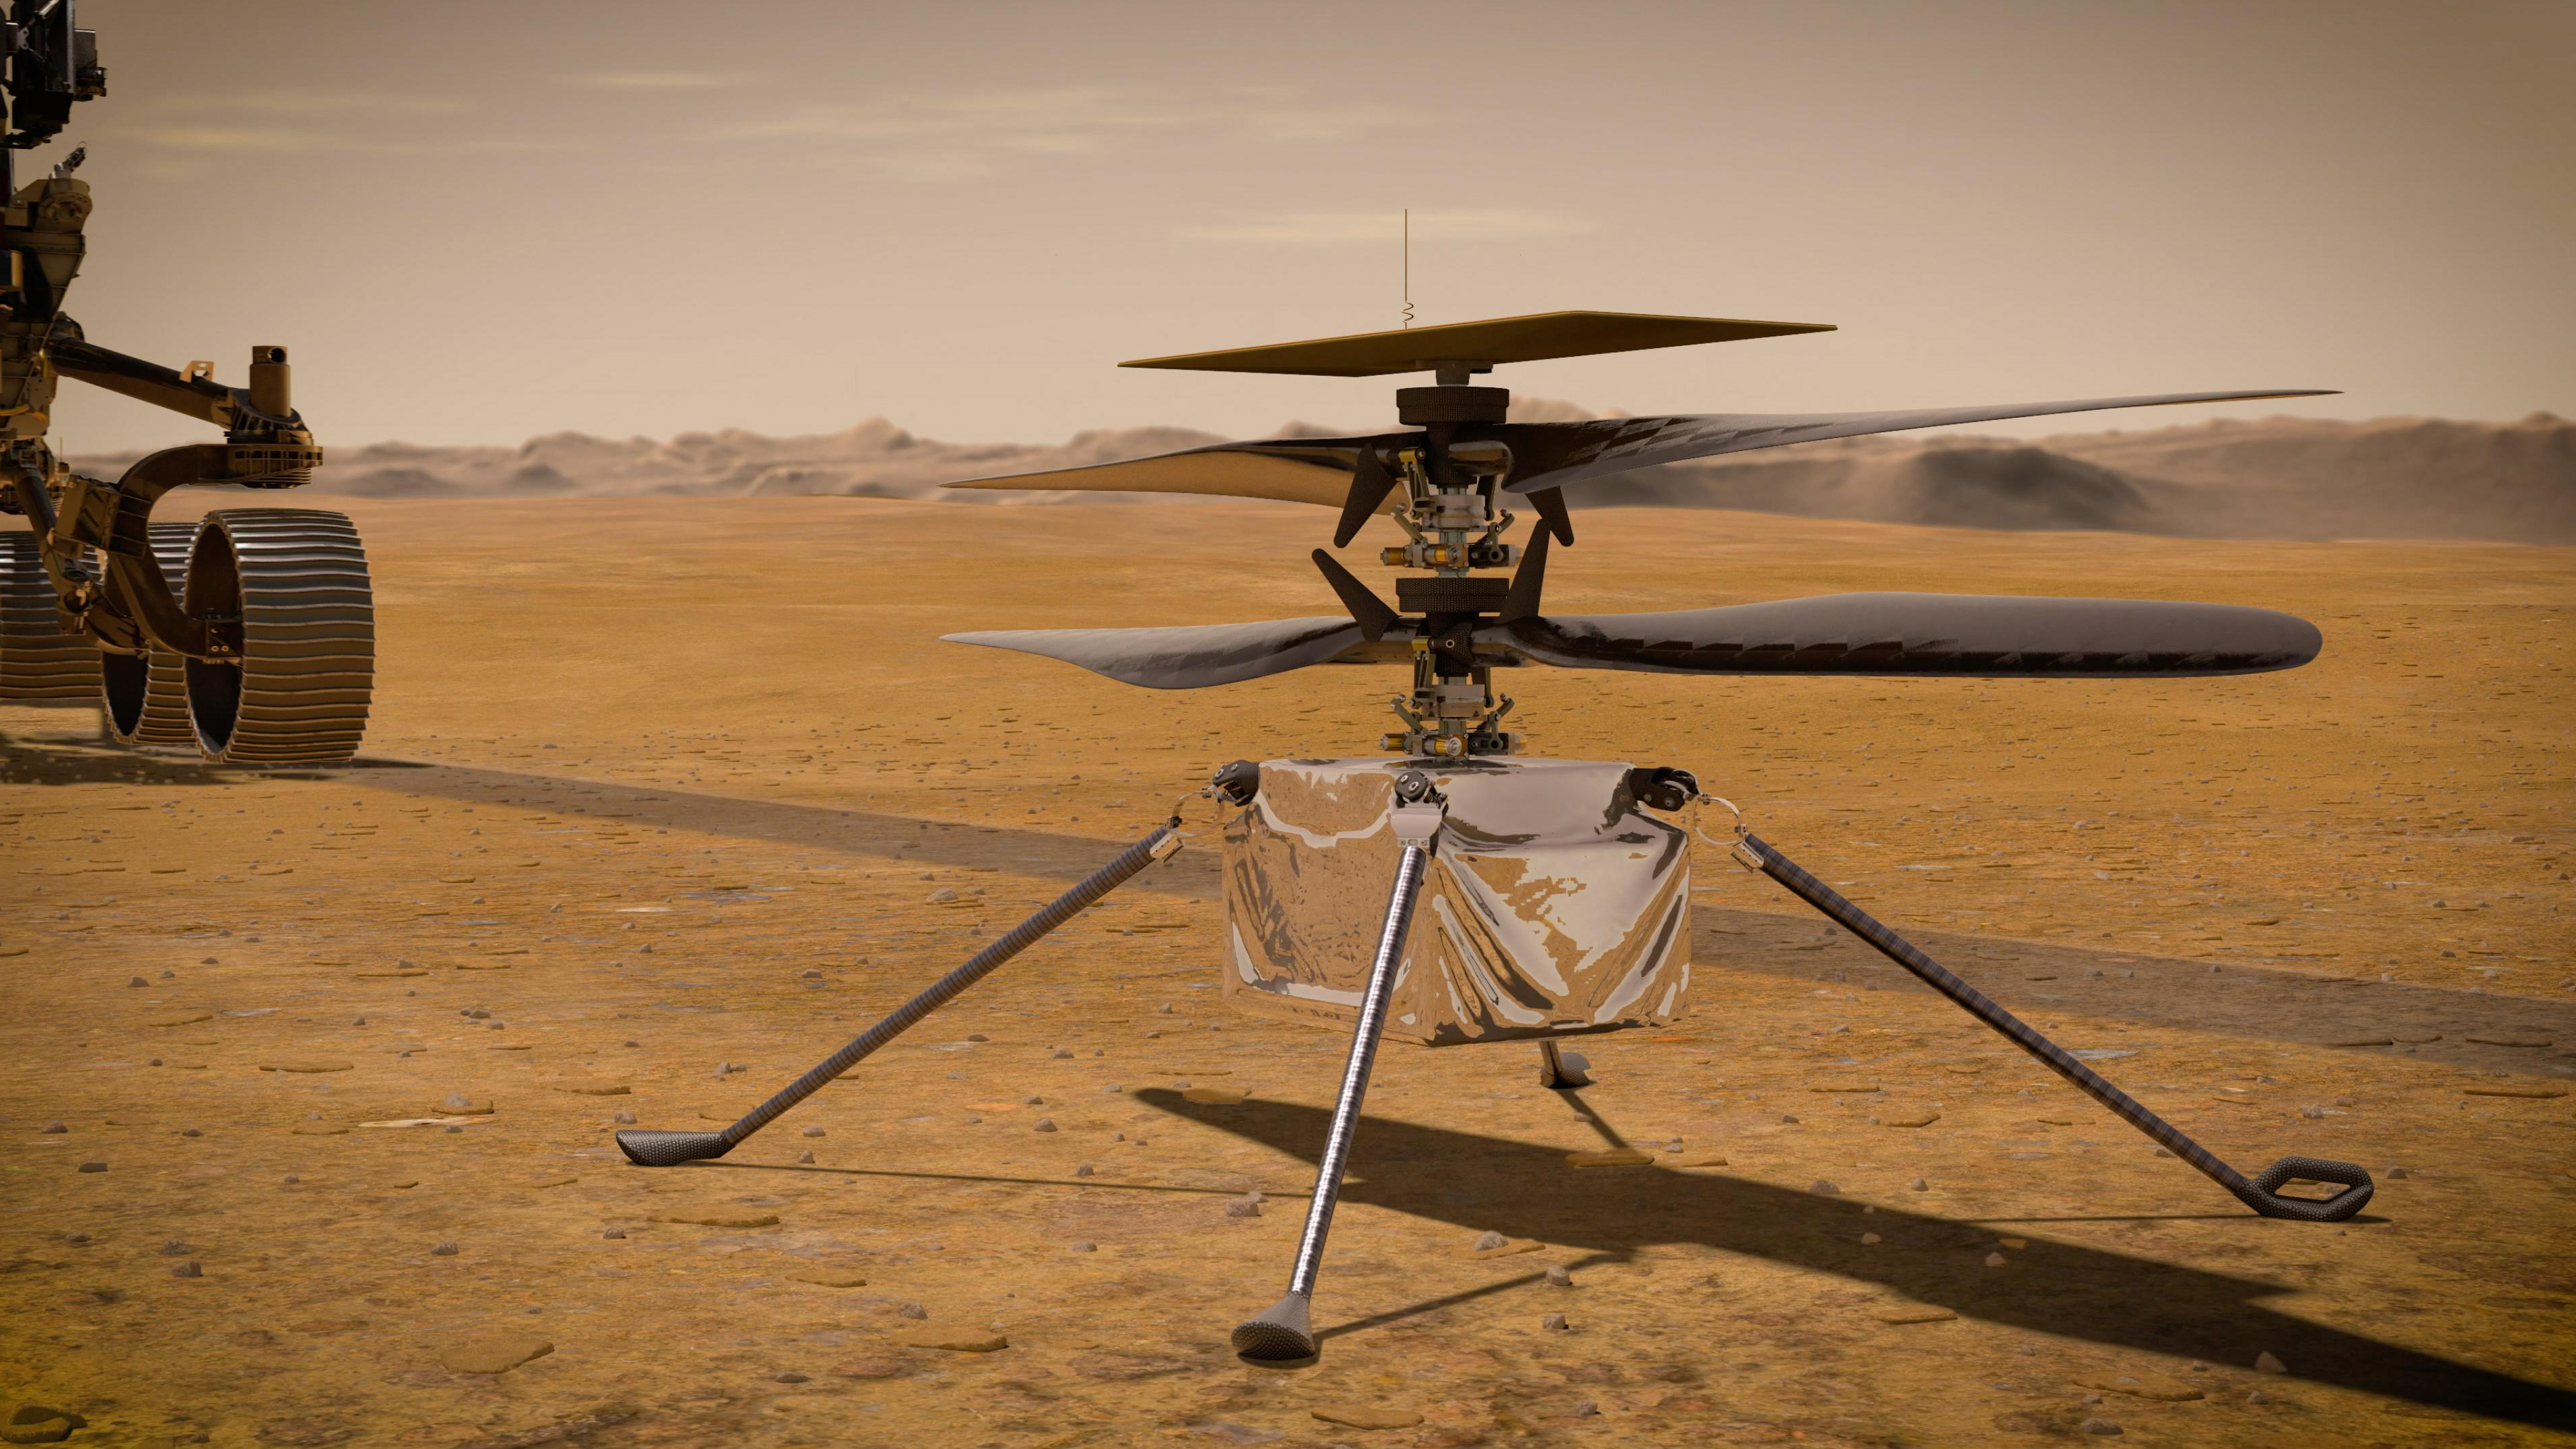 Ingenuity Mars helicopter to take flight and 5 other top space and science stories this week